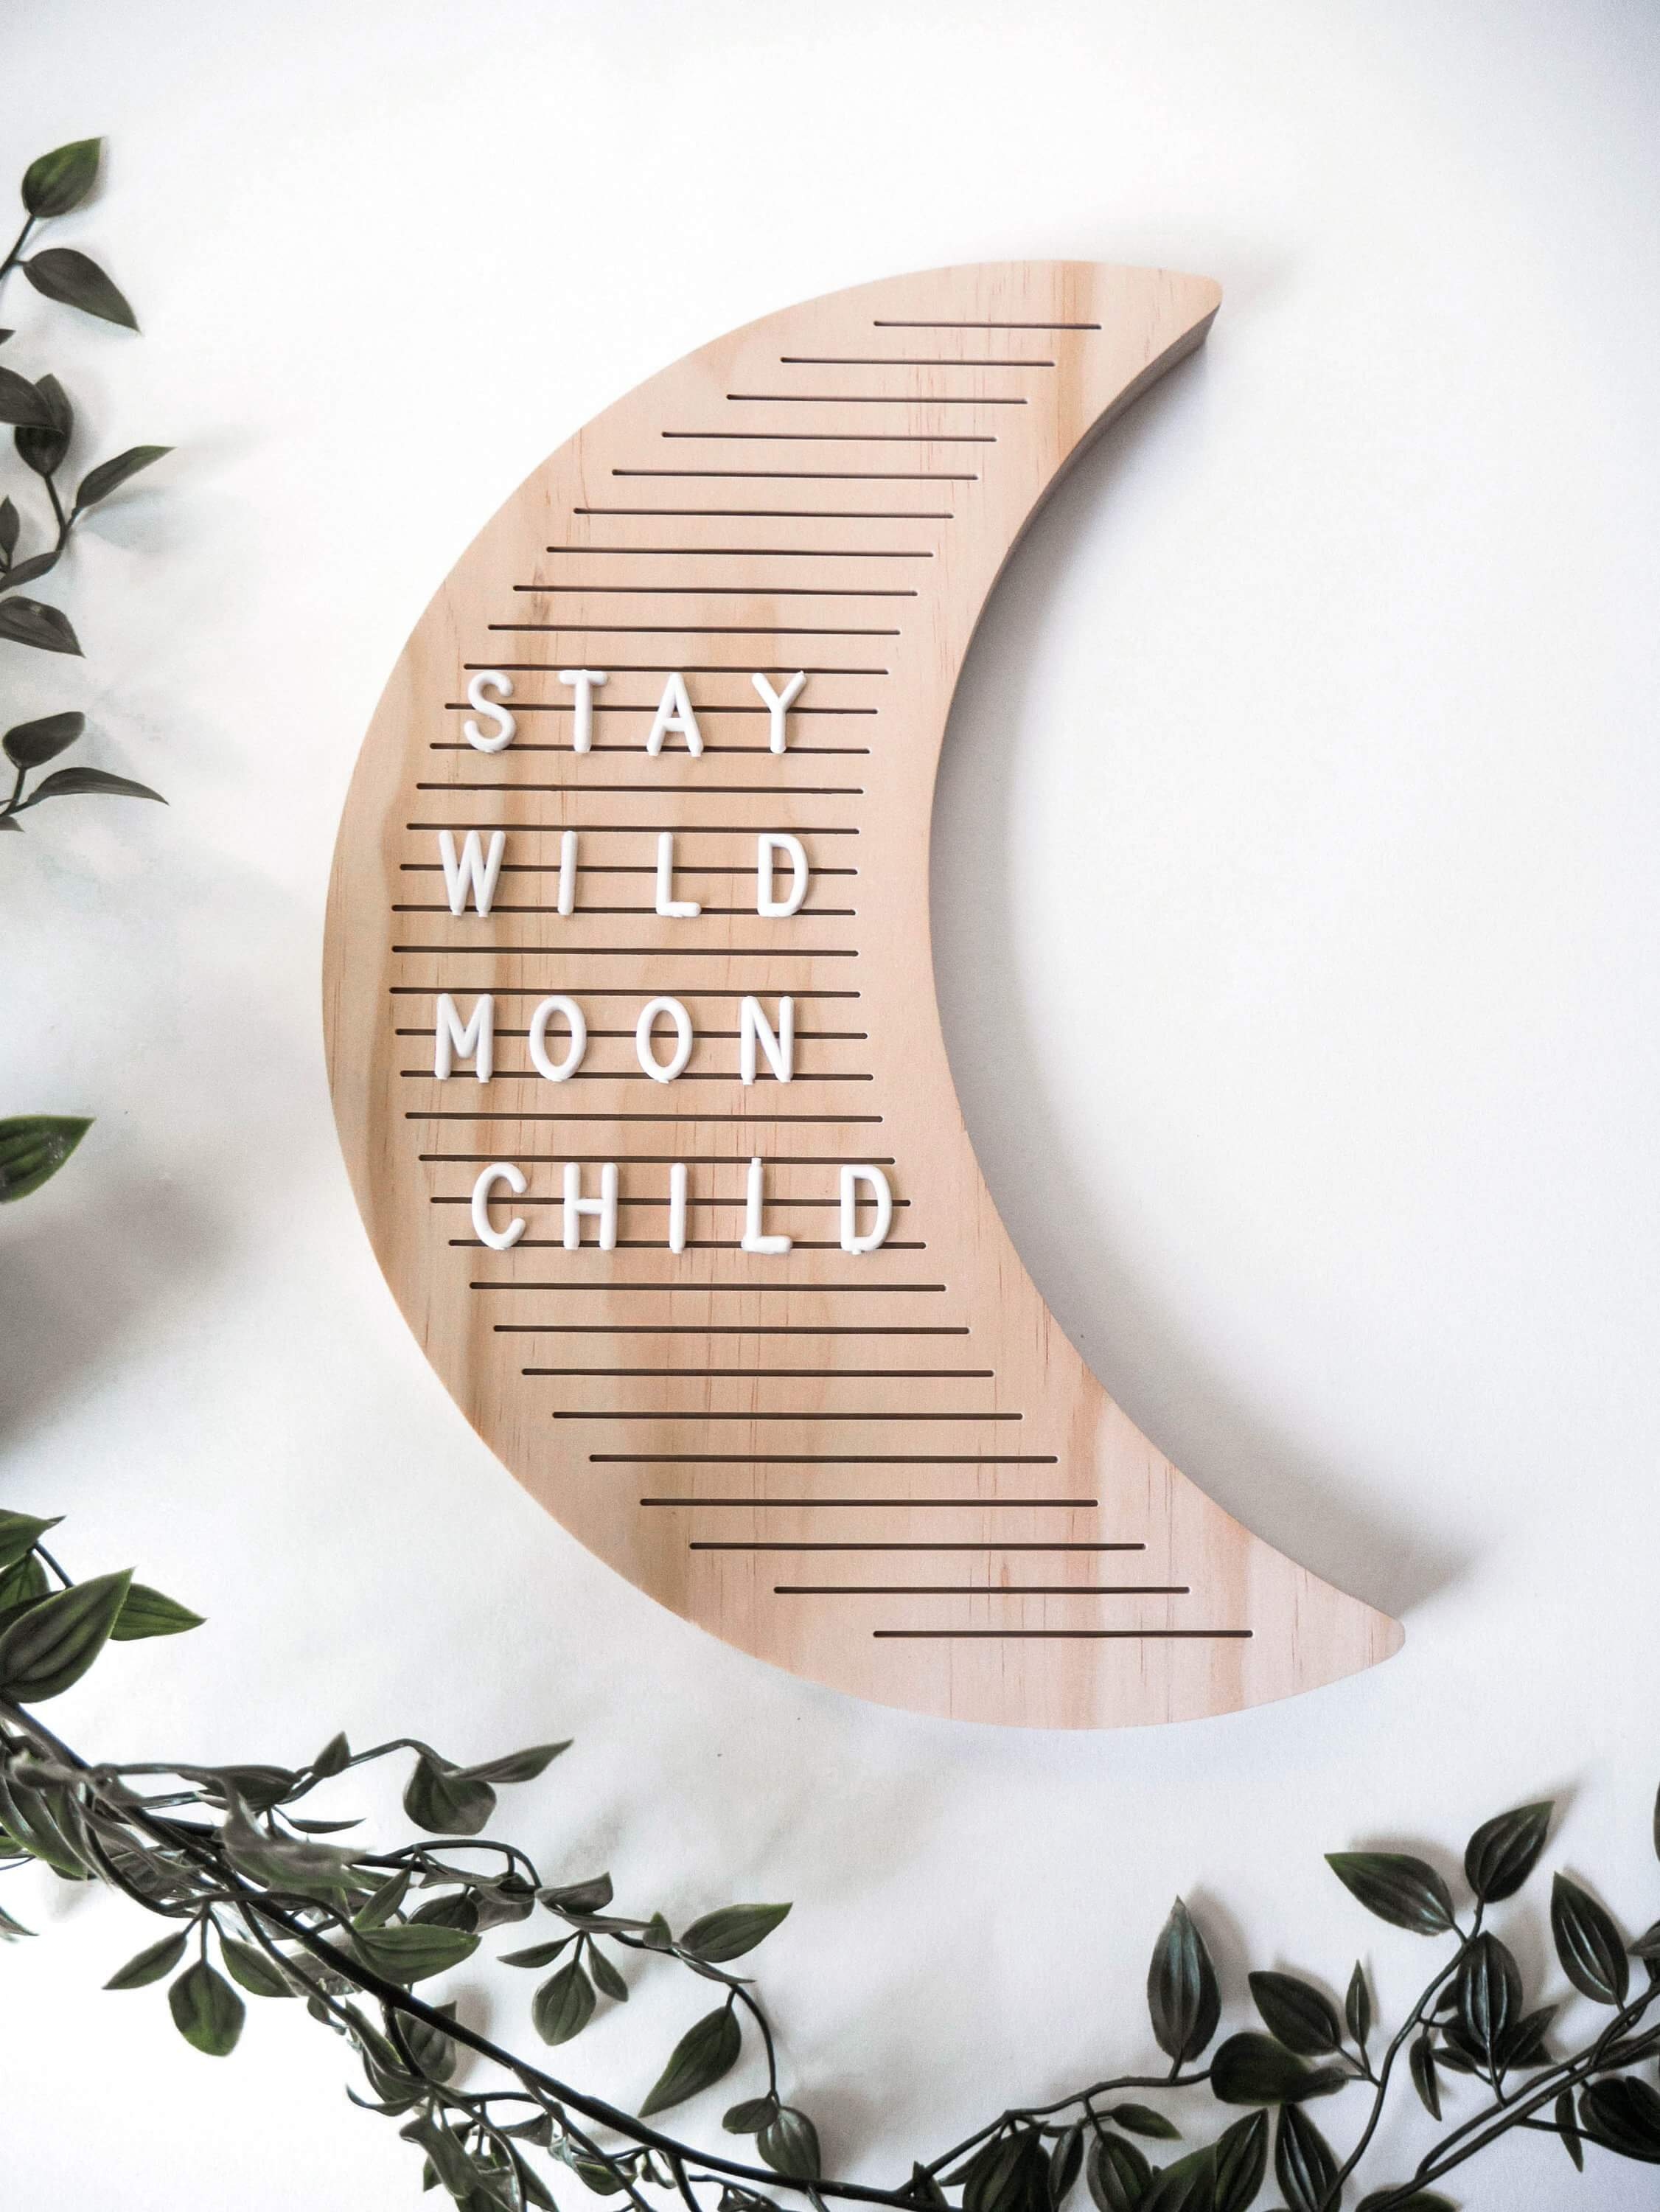 moon shaped wooden letter board